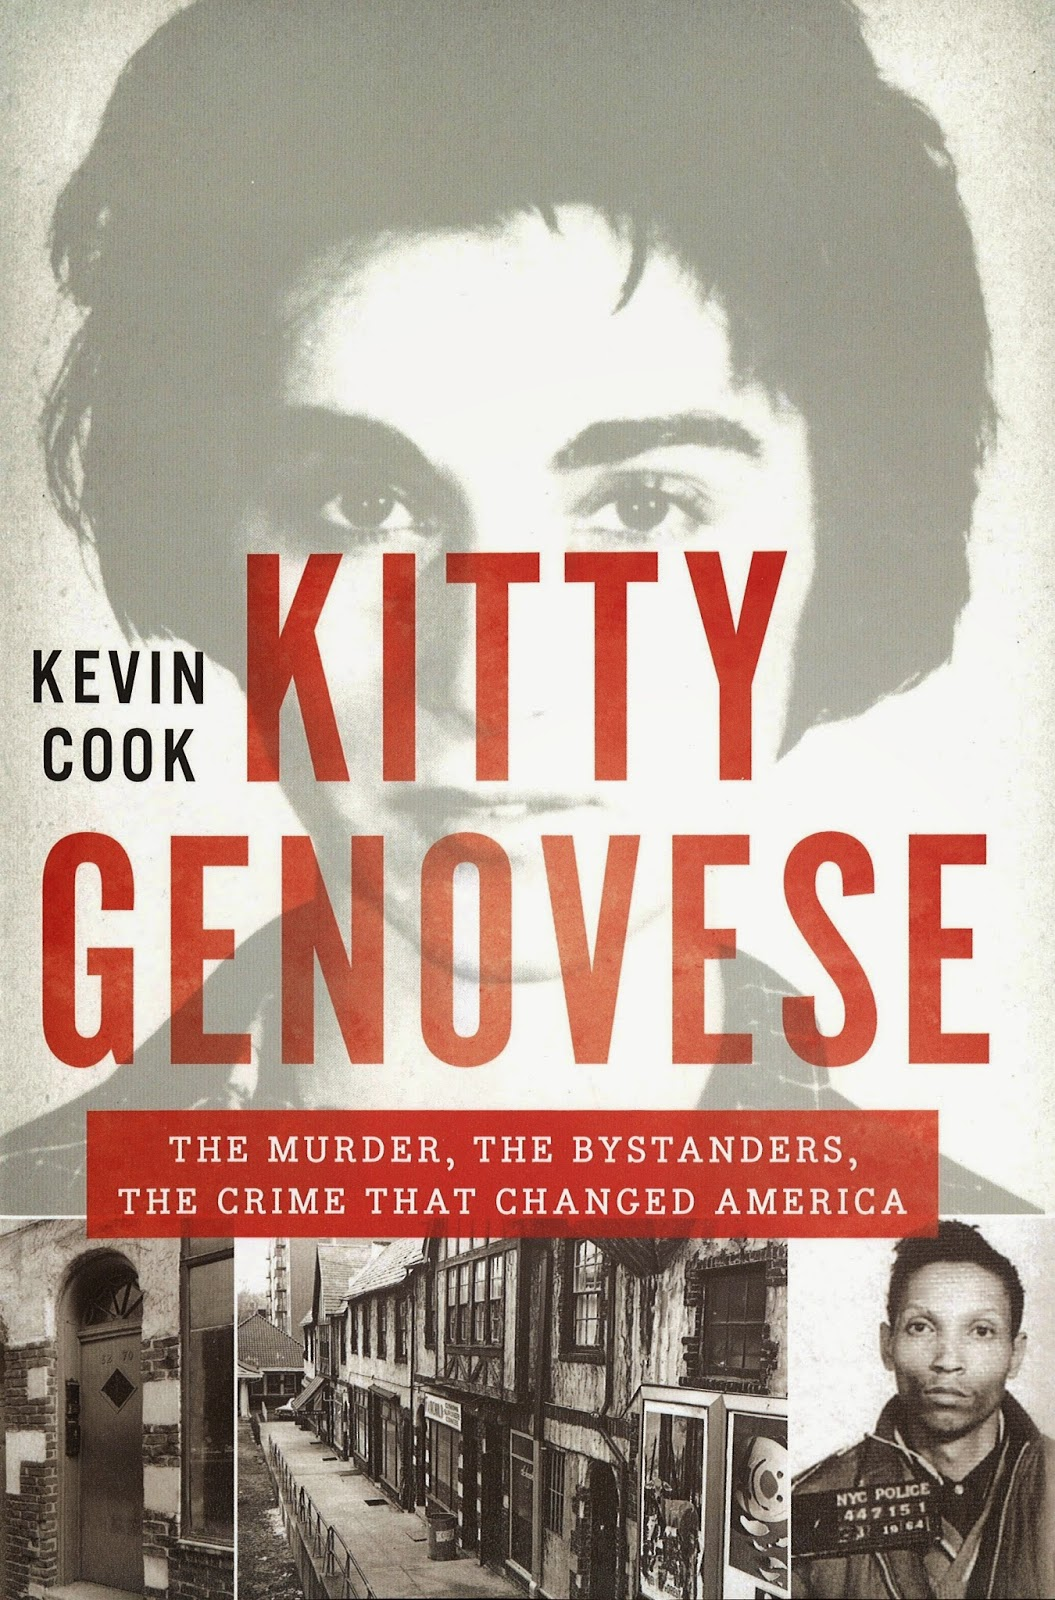 Non-Fiction: Kitty Genovese: The Murder, the Bystanders, the Crime that Changed America by Kevin Cook